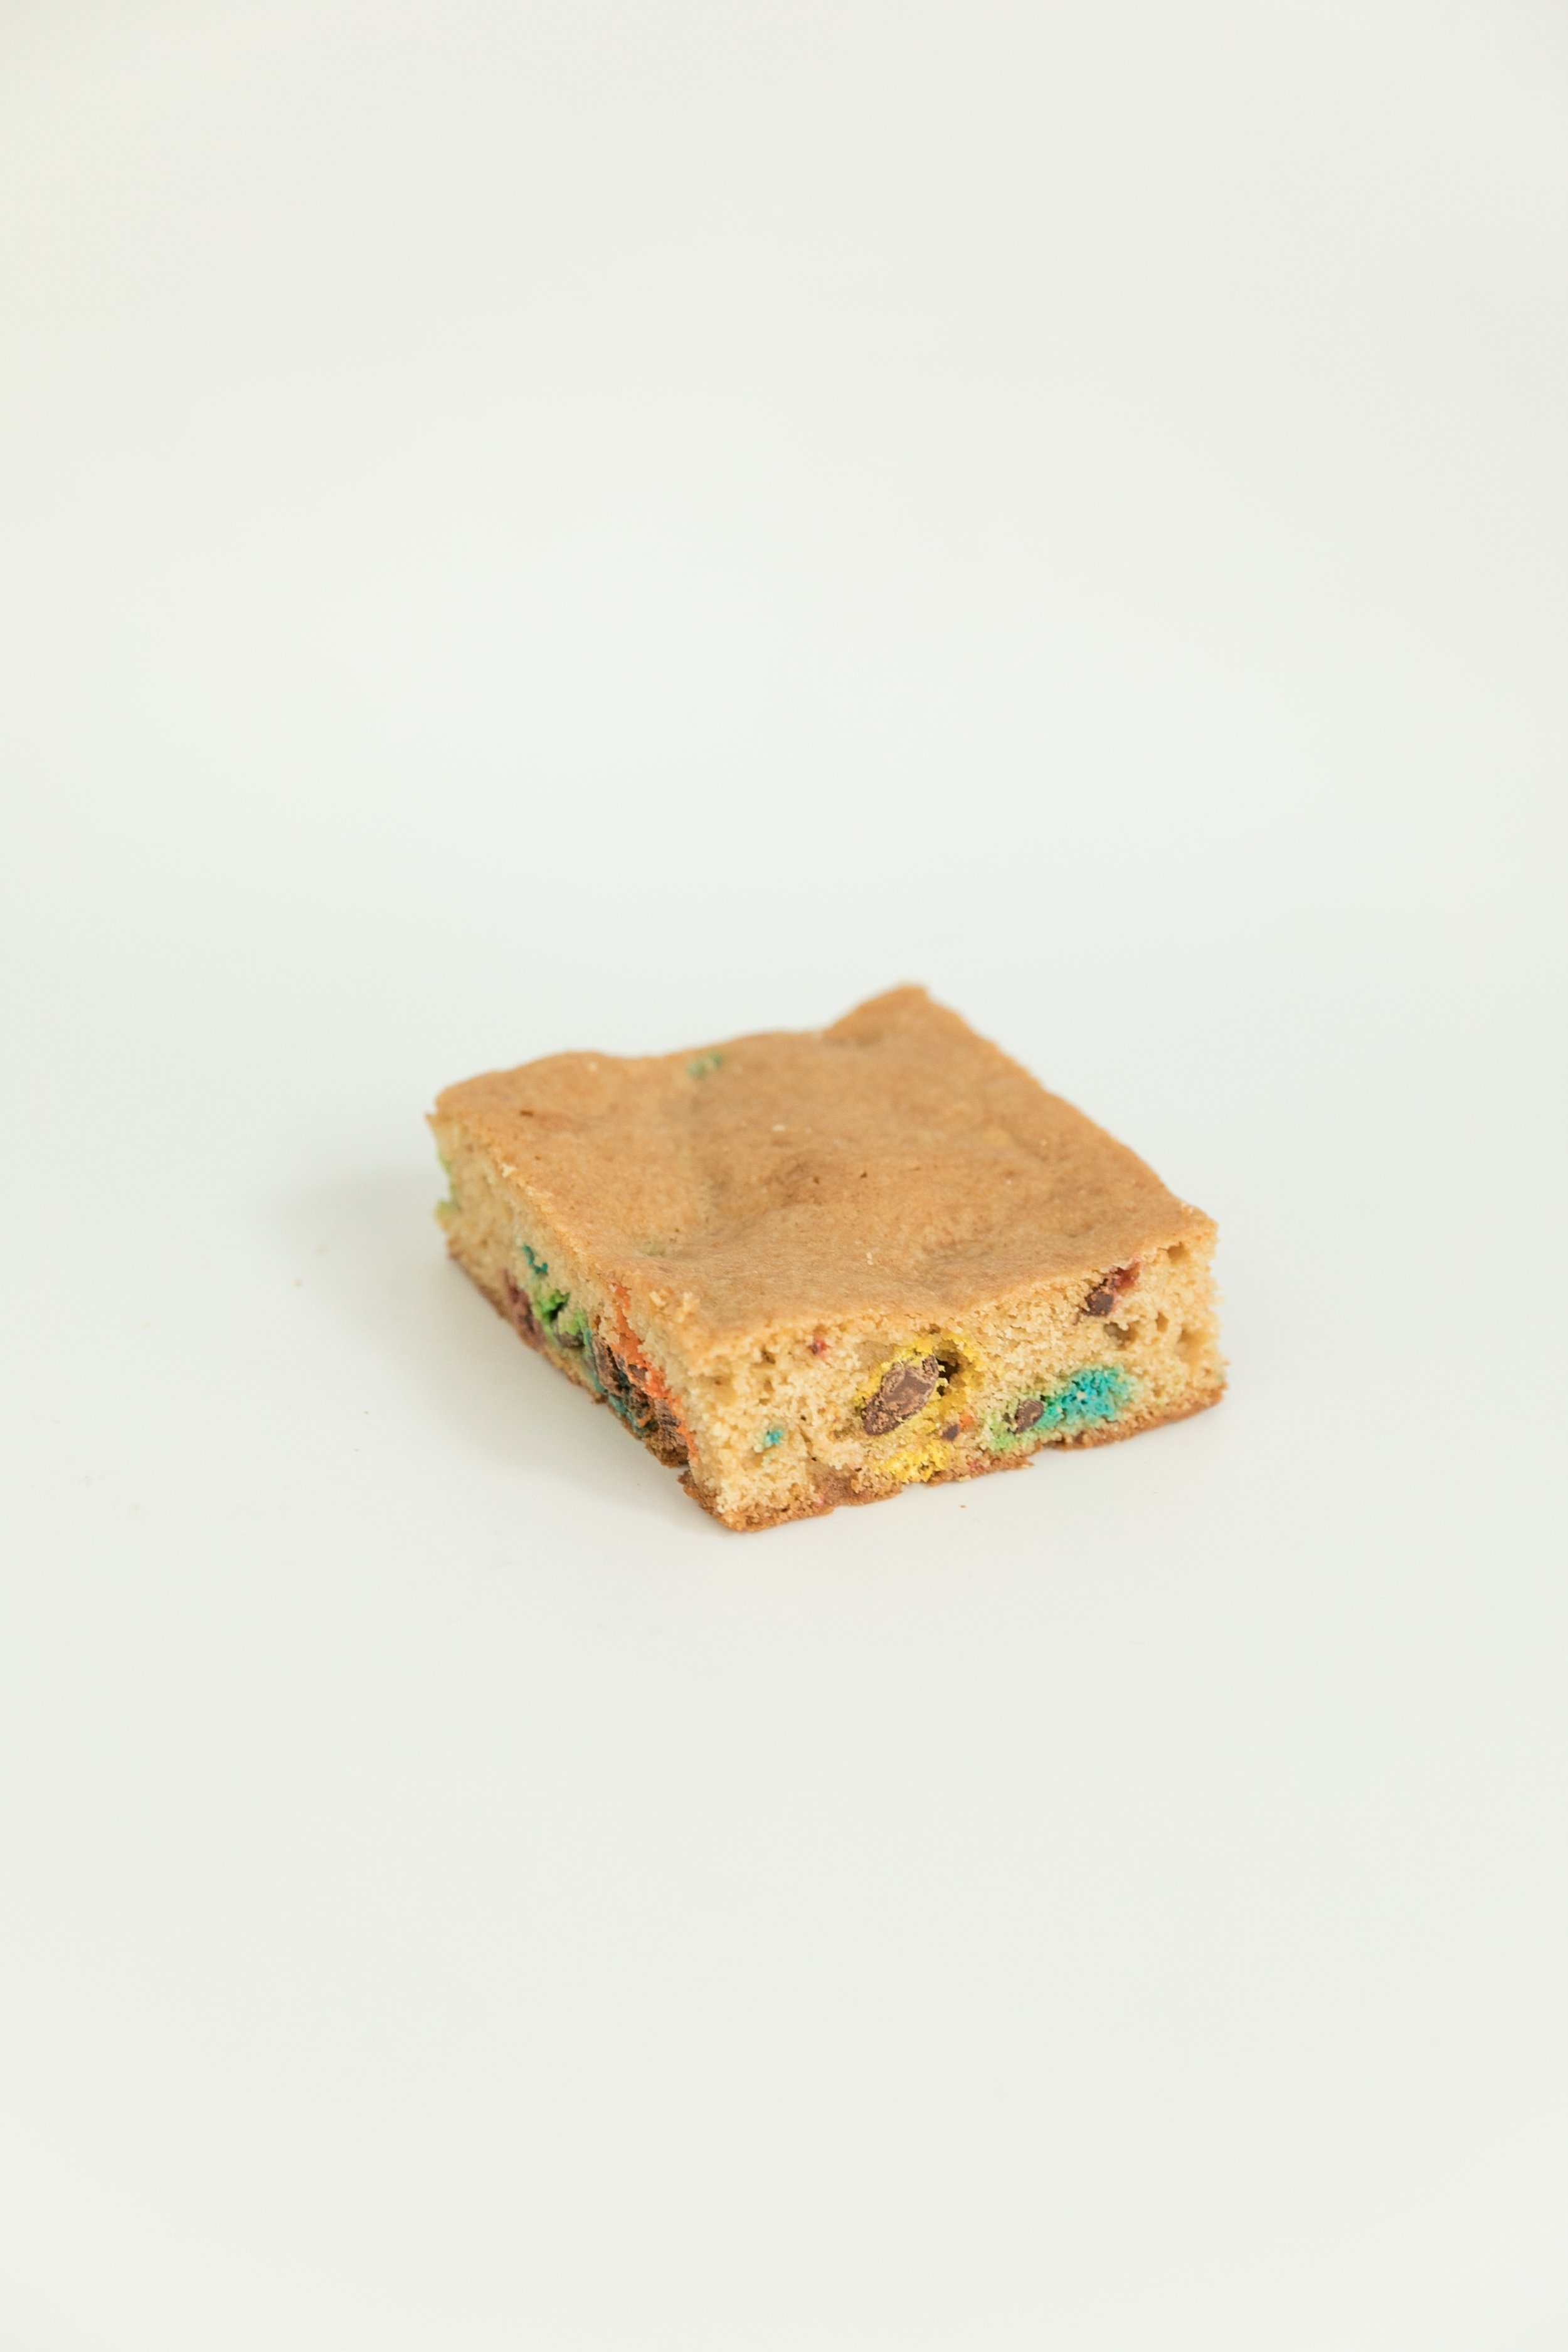 mini chip blondies filled with m&ms and chocolate chips